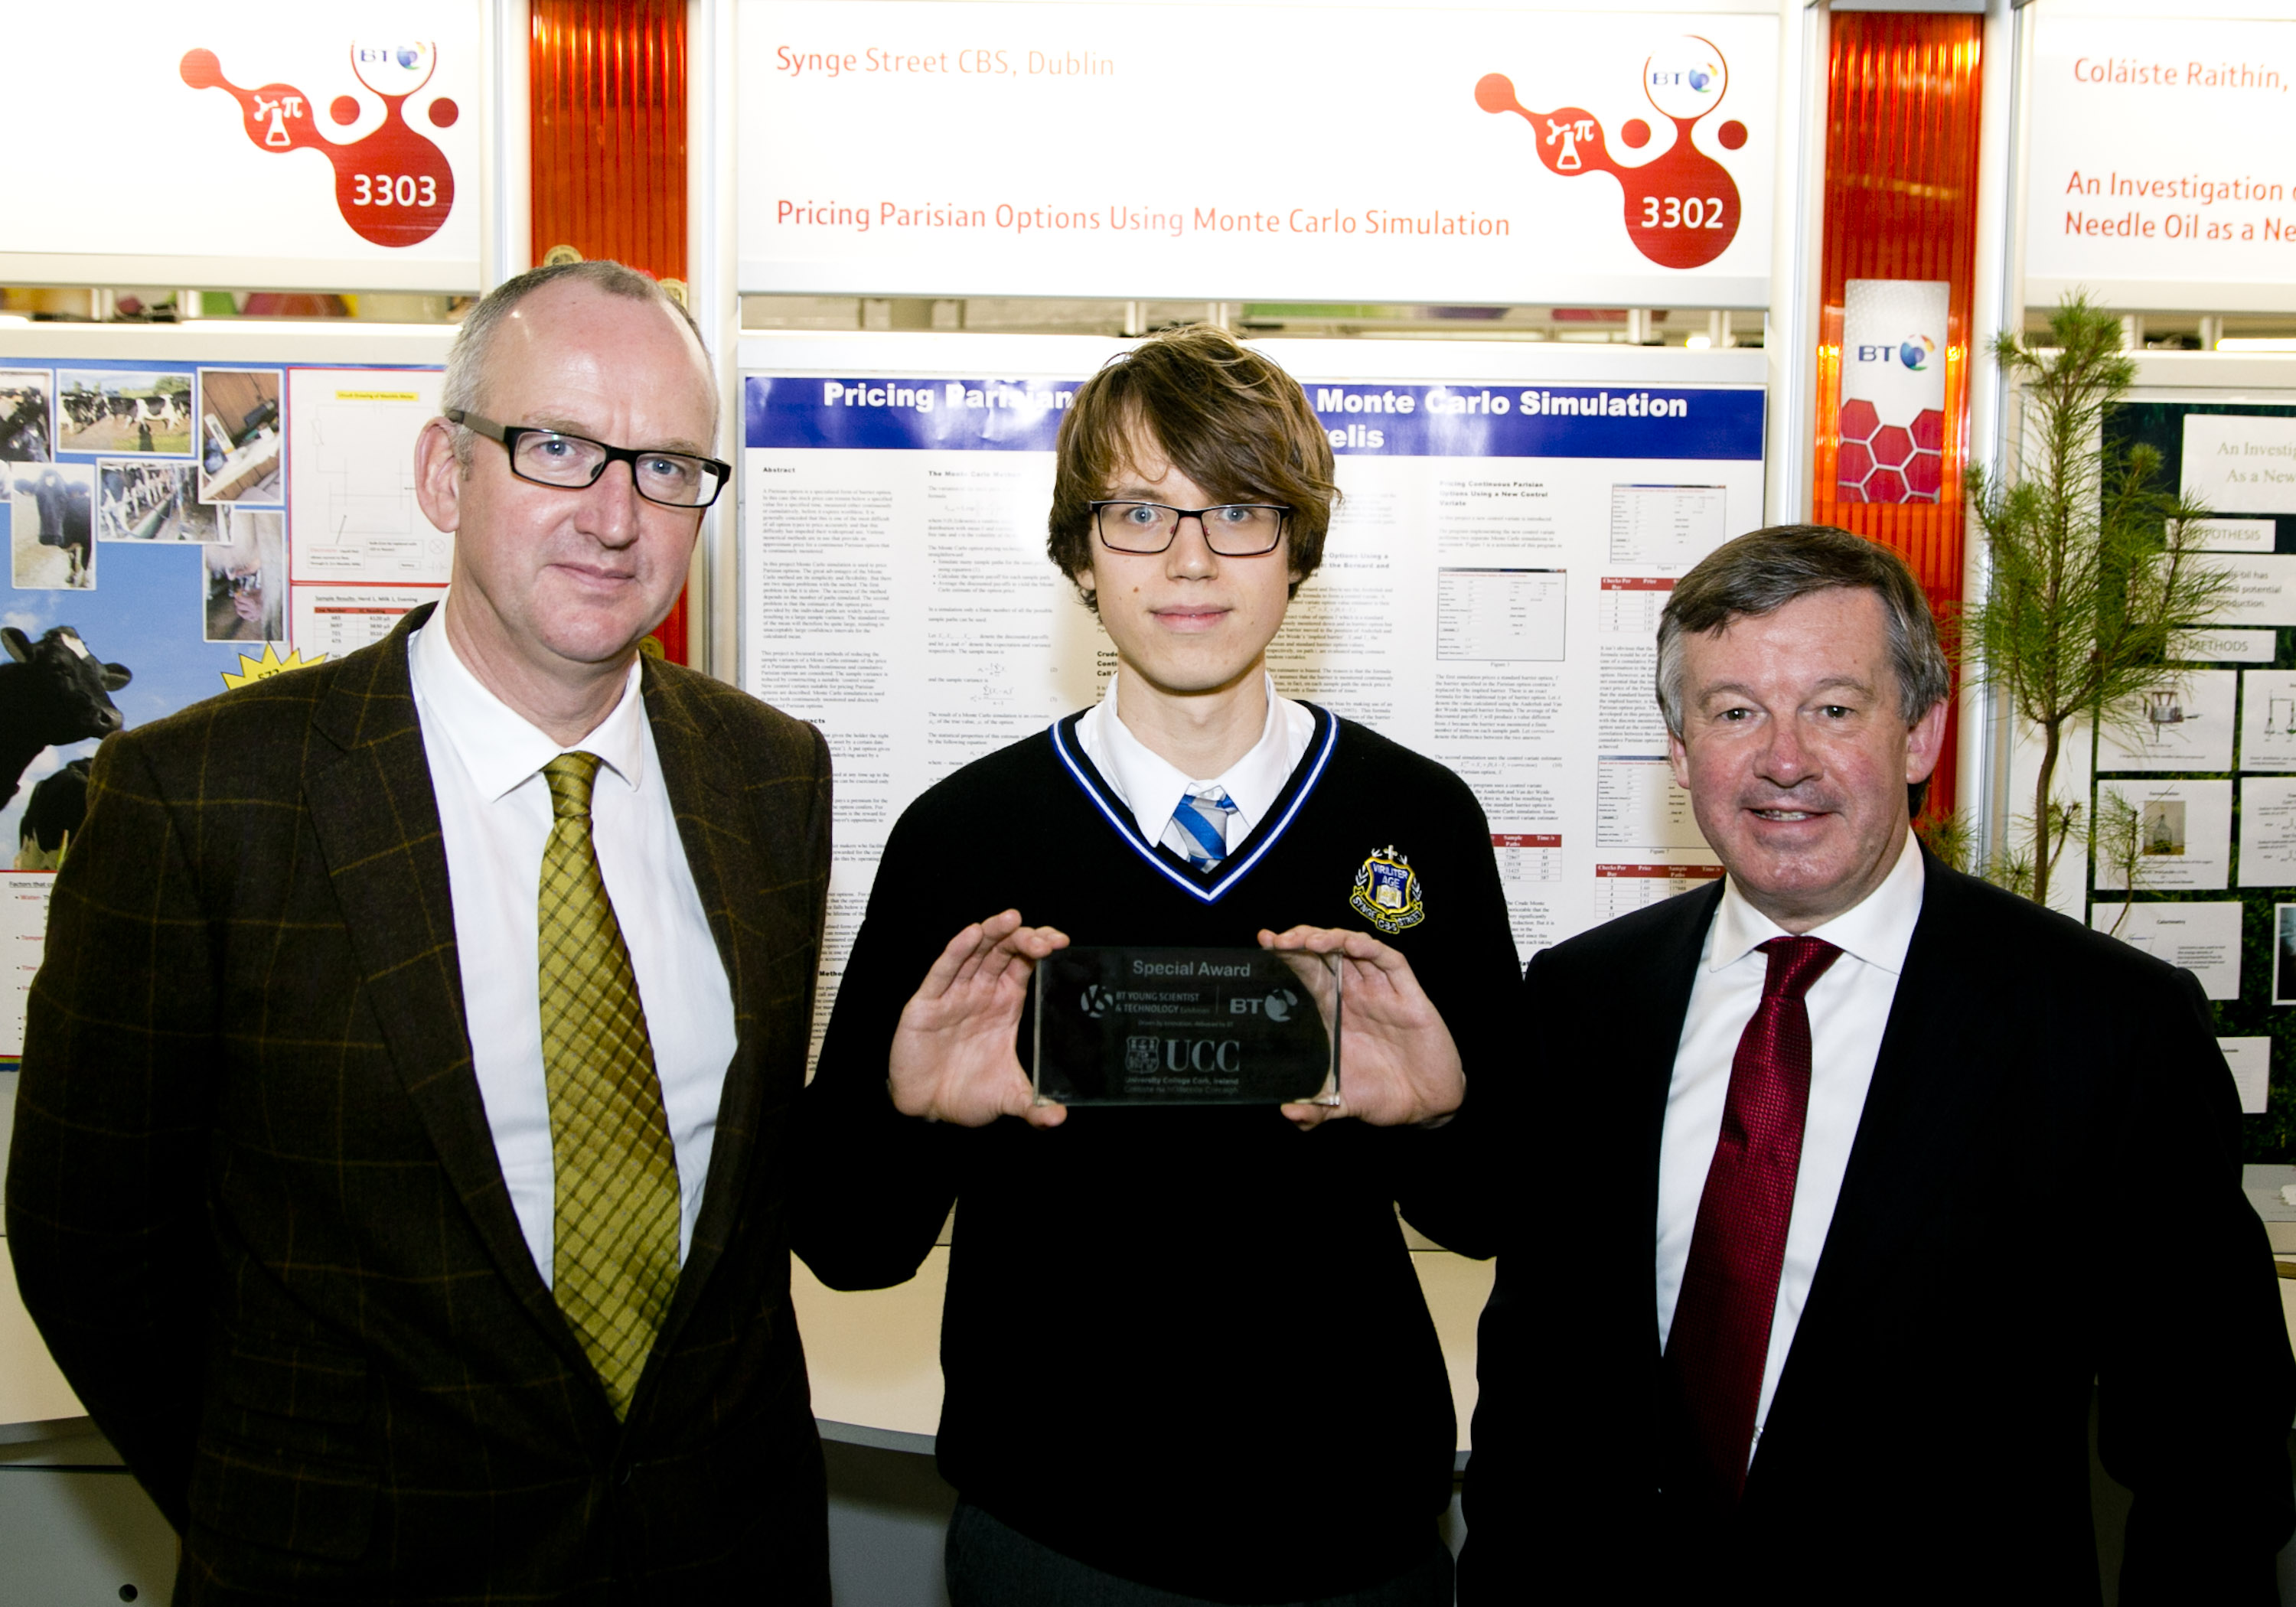 BT Young Scientist and Technology Exhibition 2016 at the RDS. Picture Colm Mahady / Fennells